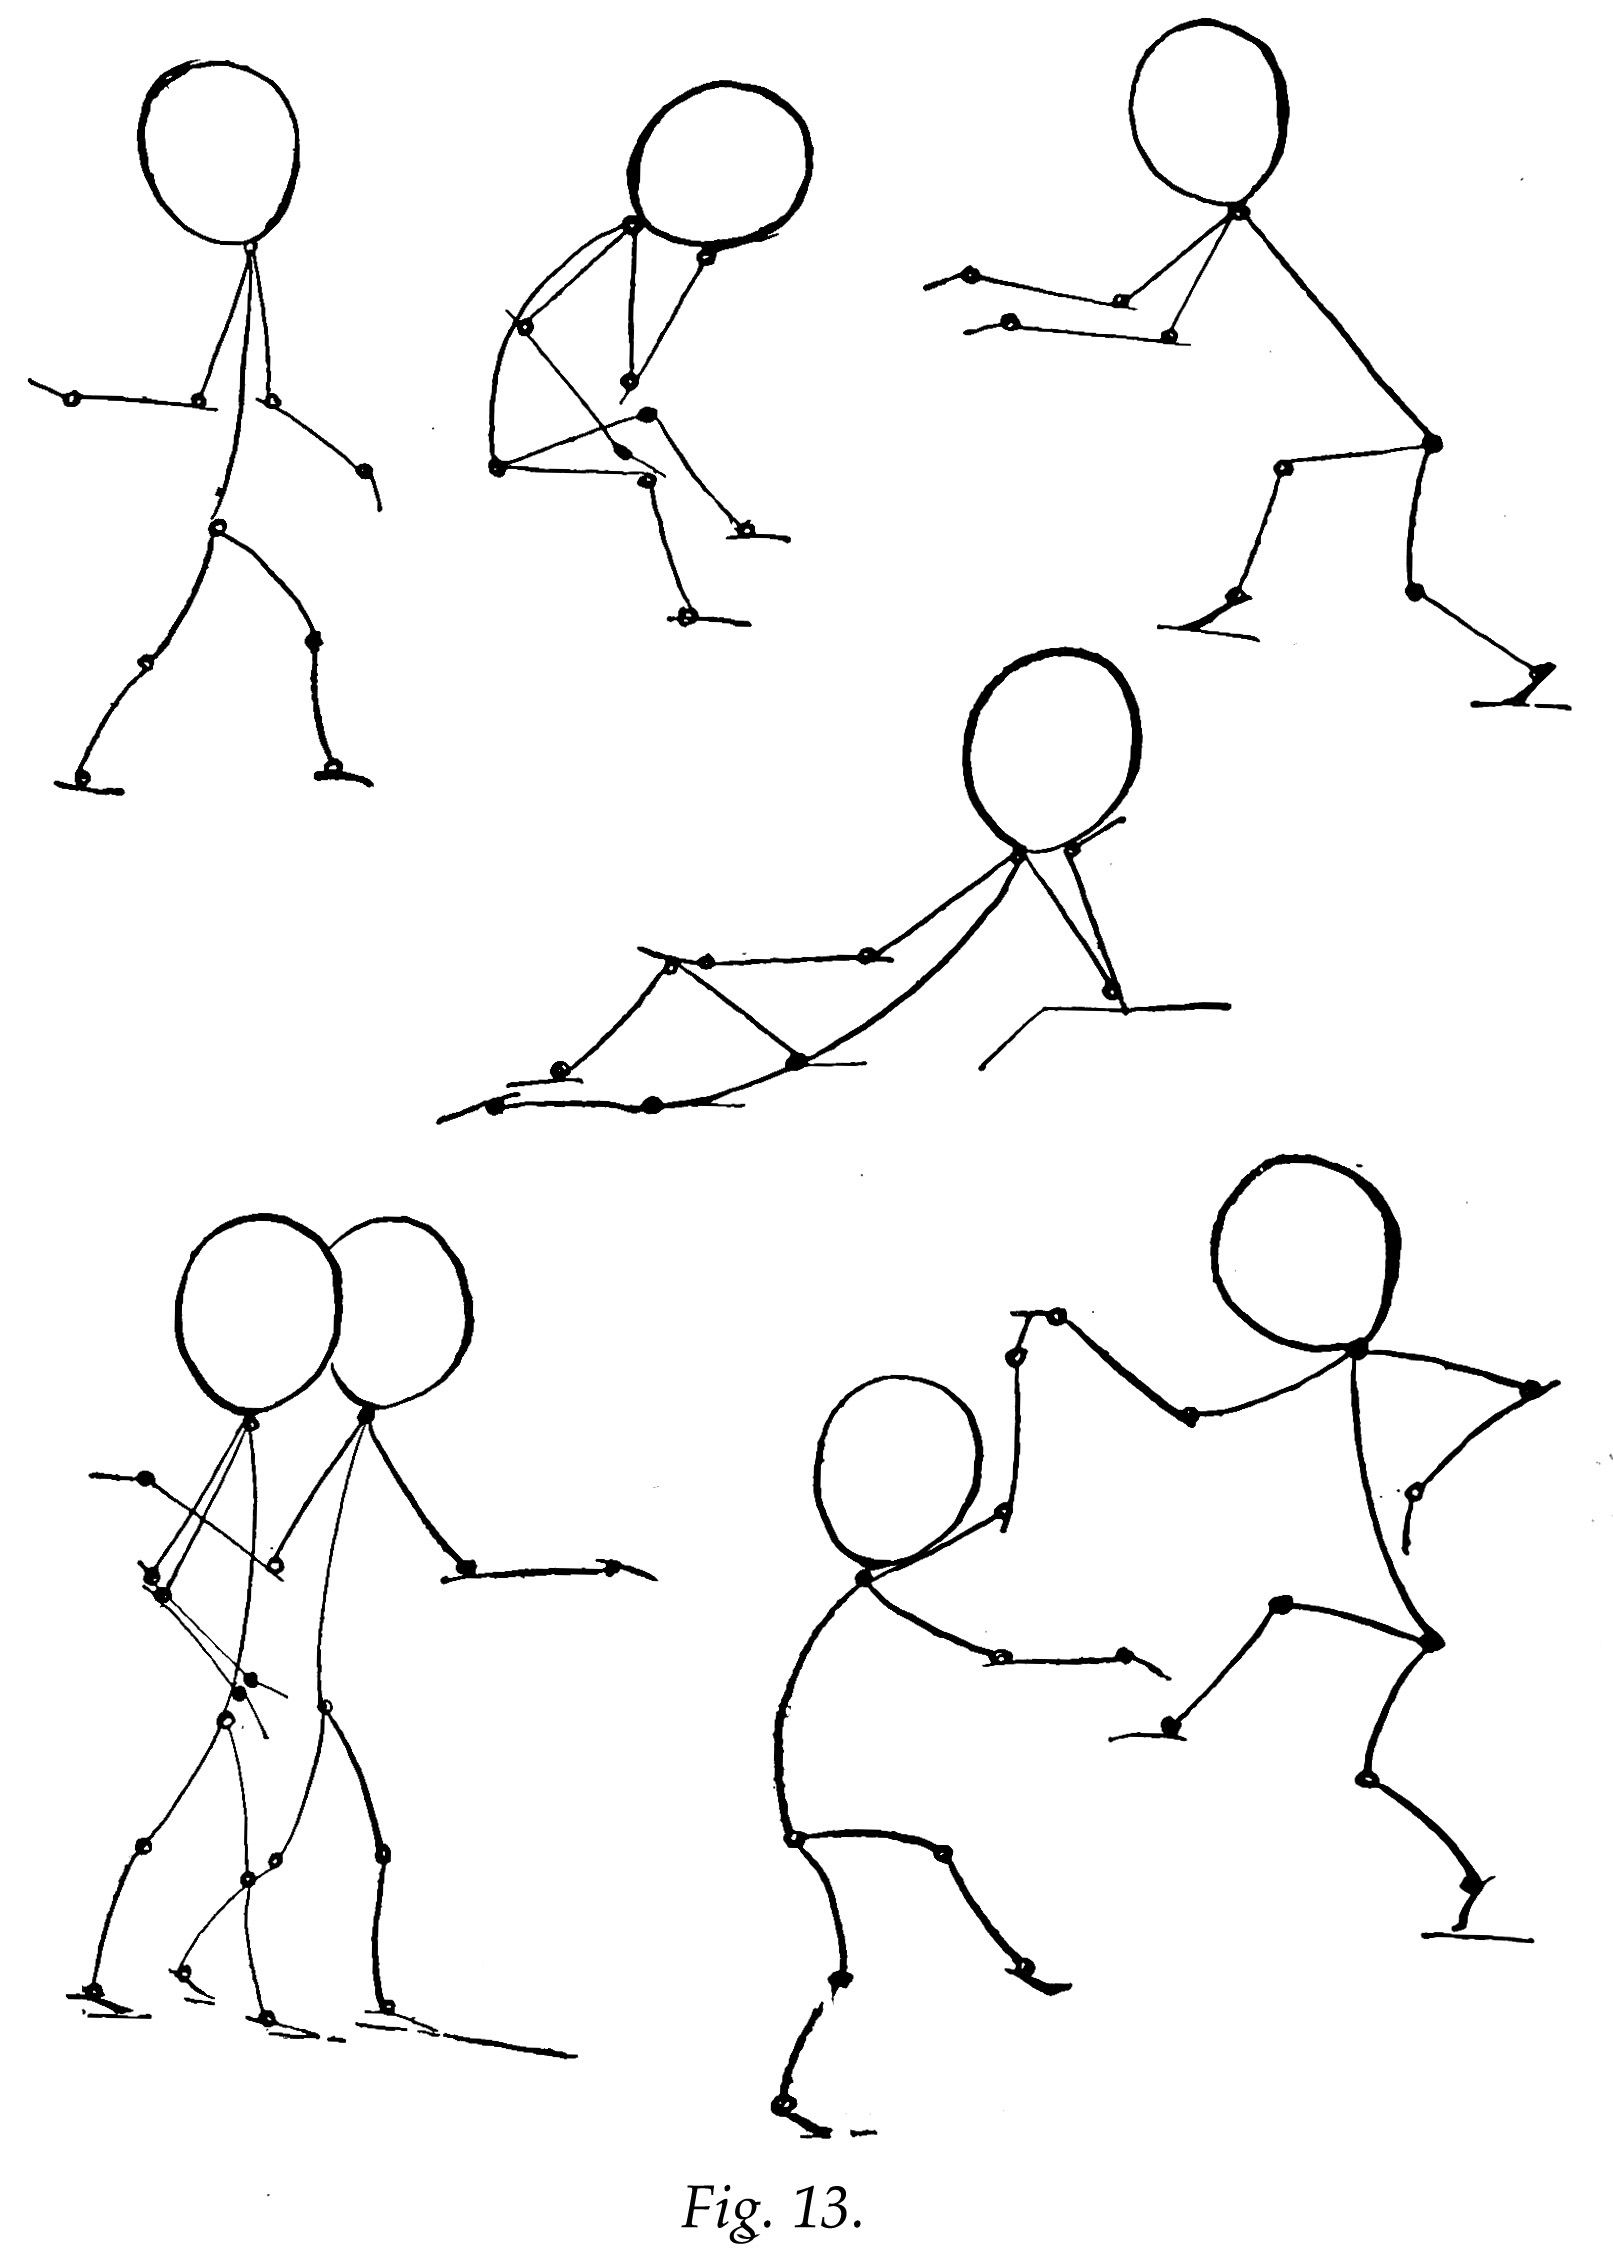 How to draw people 25 different ways drawing made easy